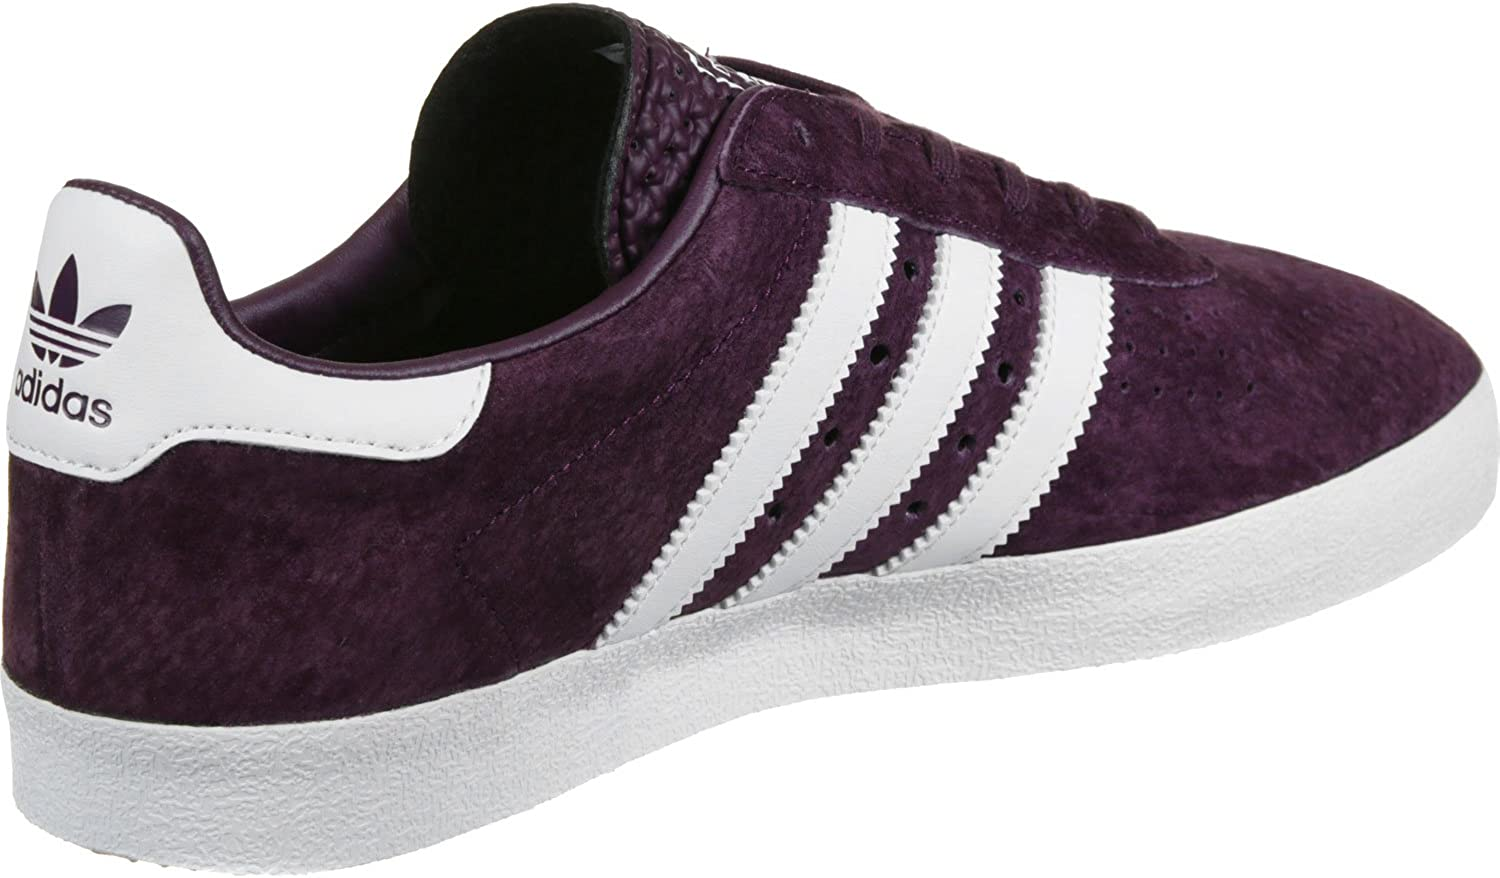 Adidas Men's By9766 Fitness shoes